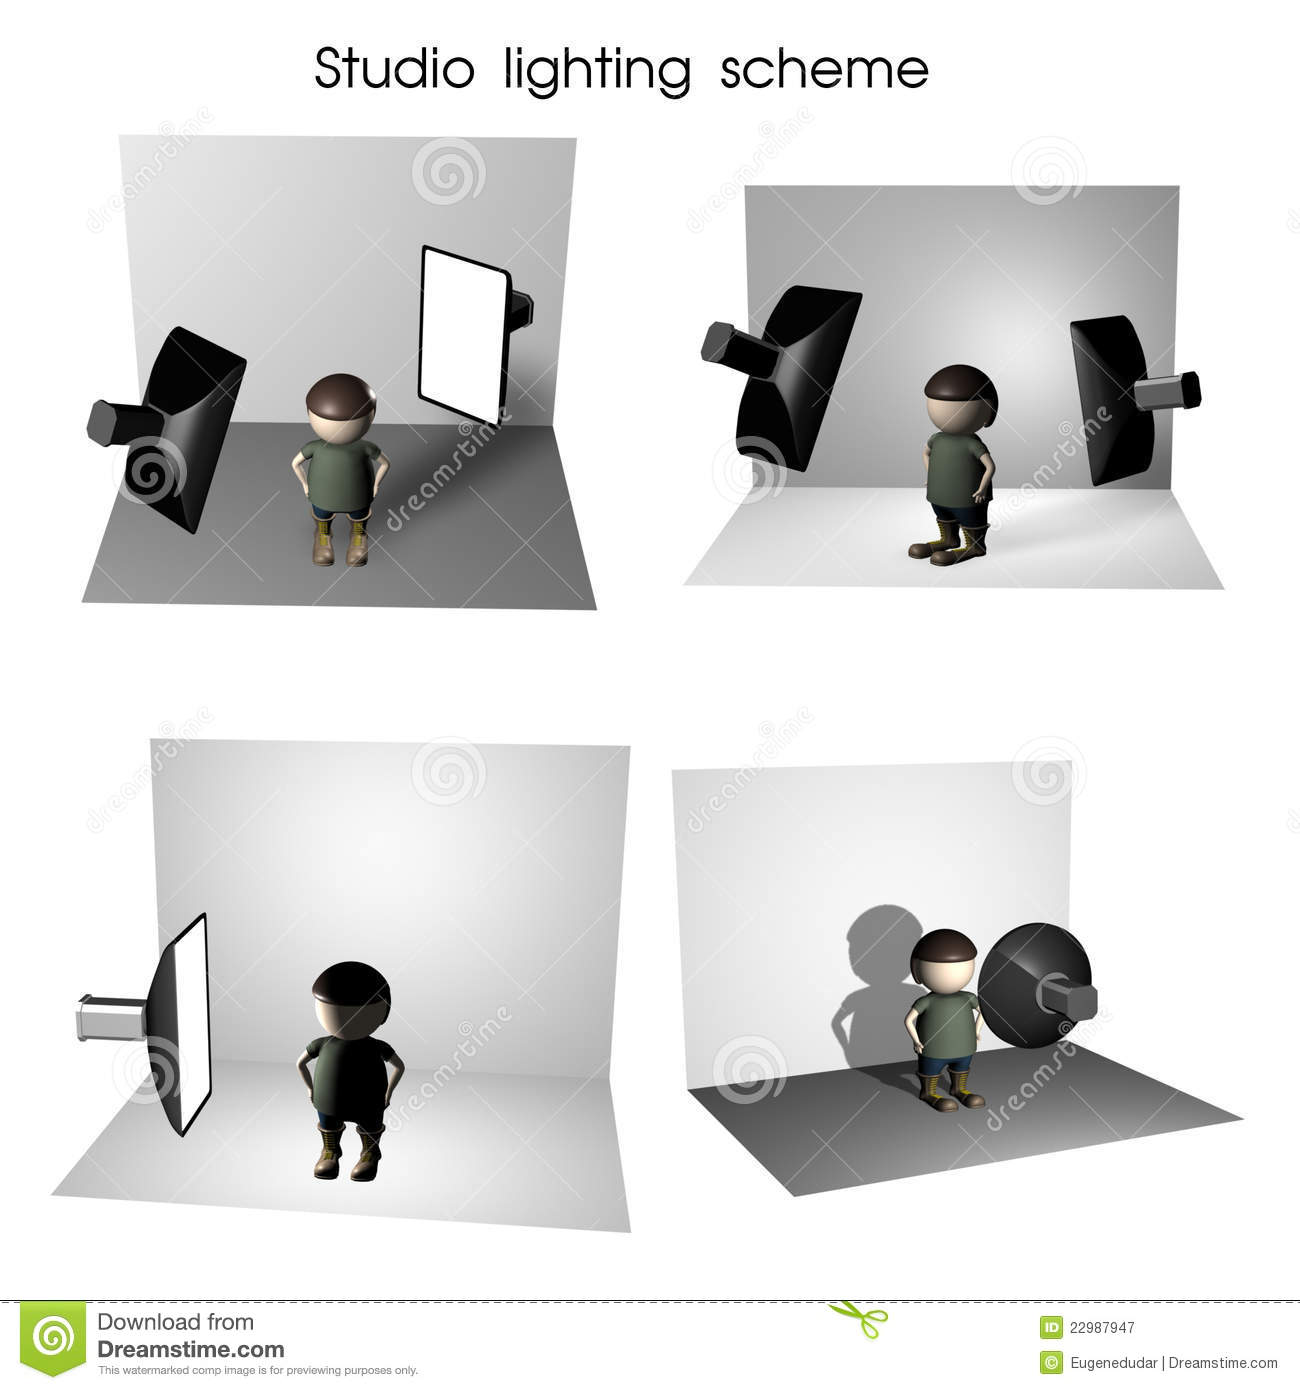 how to set camera while using lighting